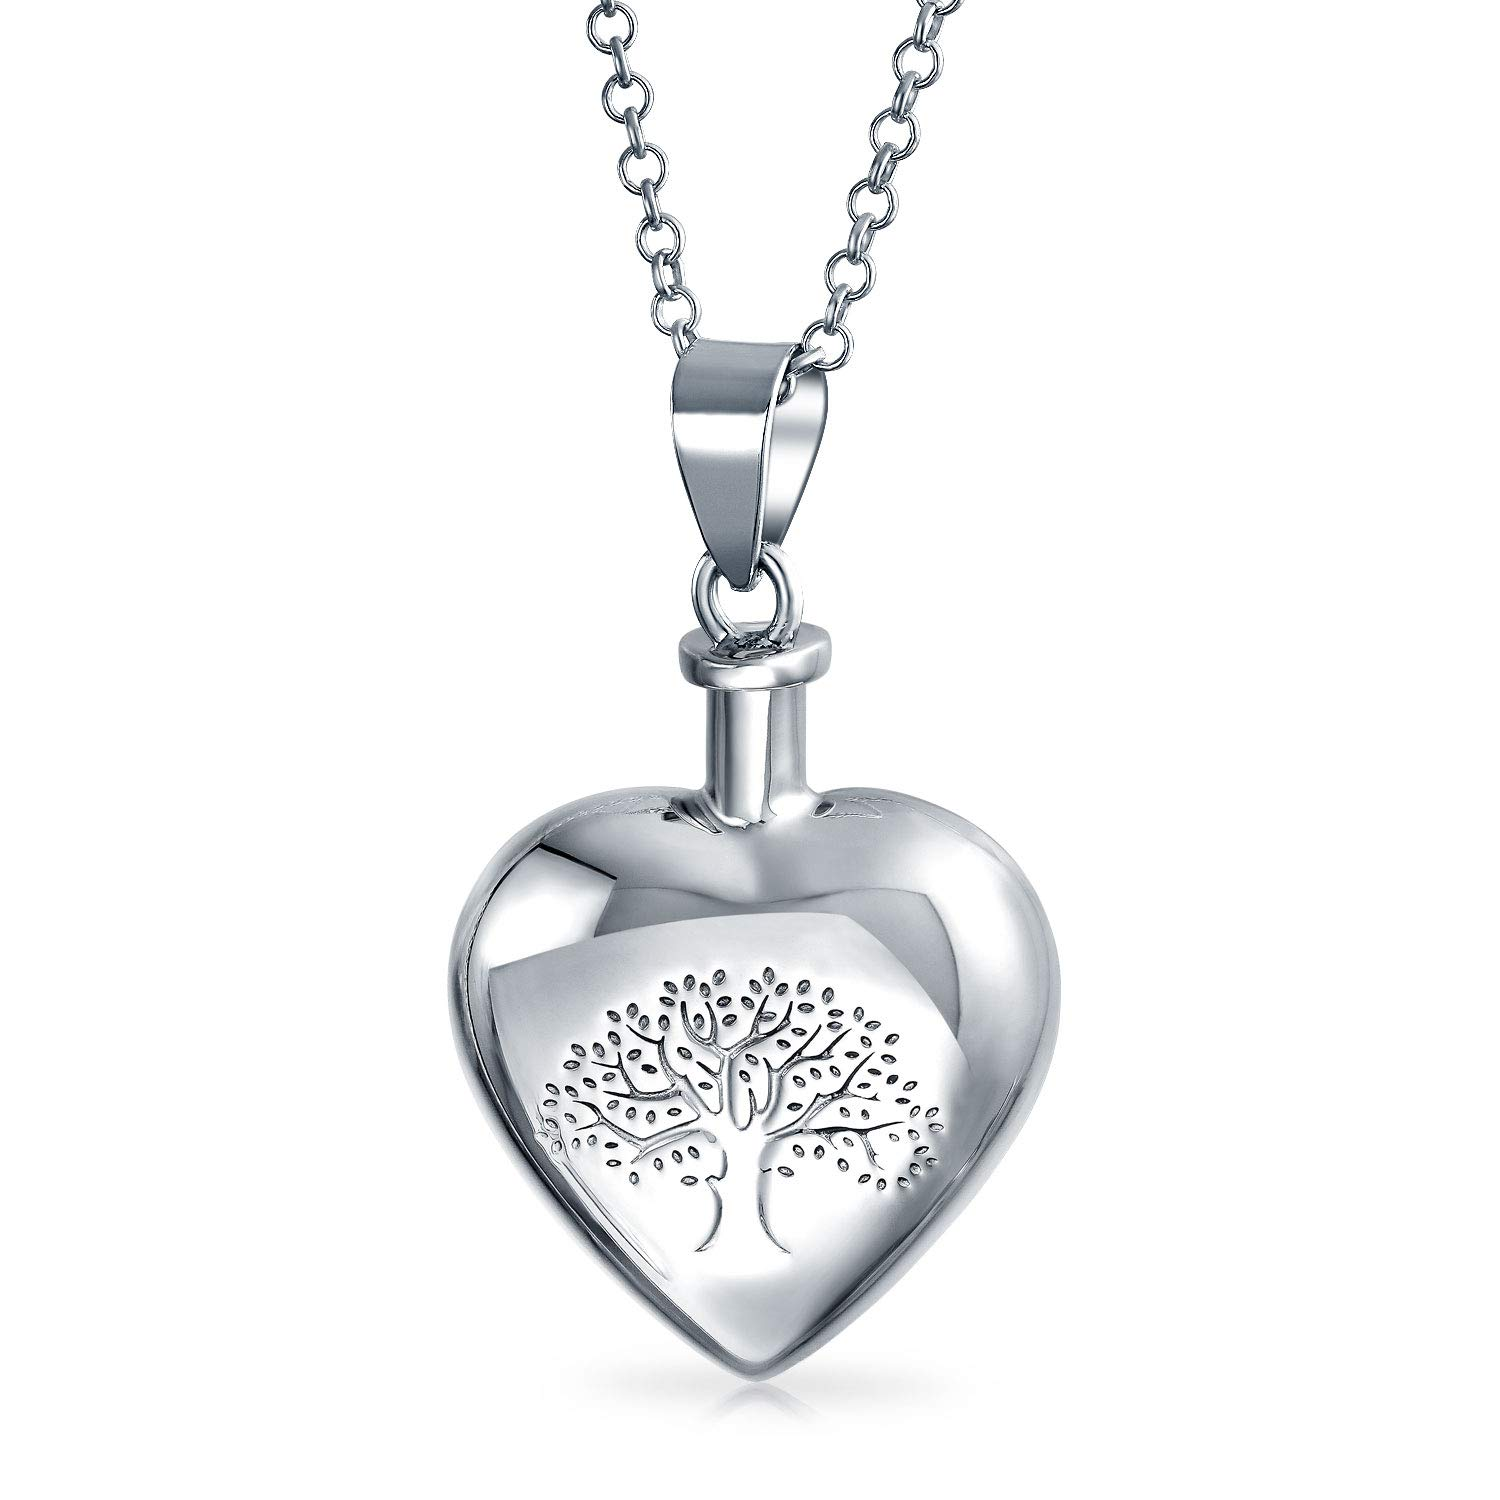 Personalized Heart Shape Family Tree Cremation Locket Memorial Urn Pendant Necklace Sterling Silver Custom Engraved